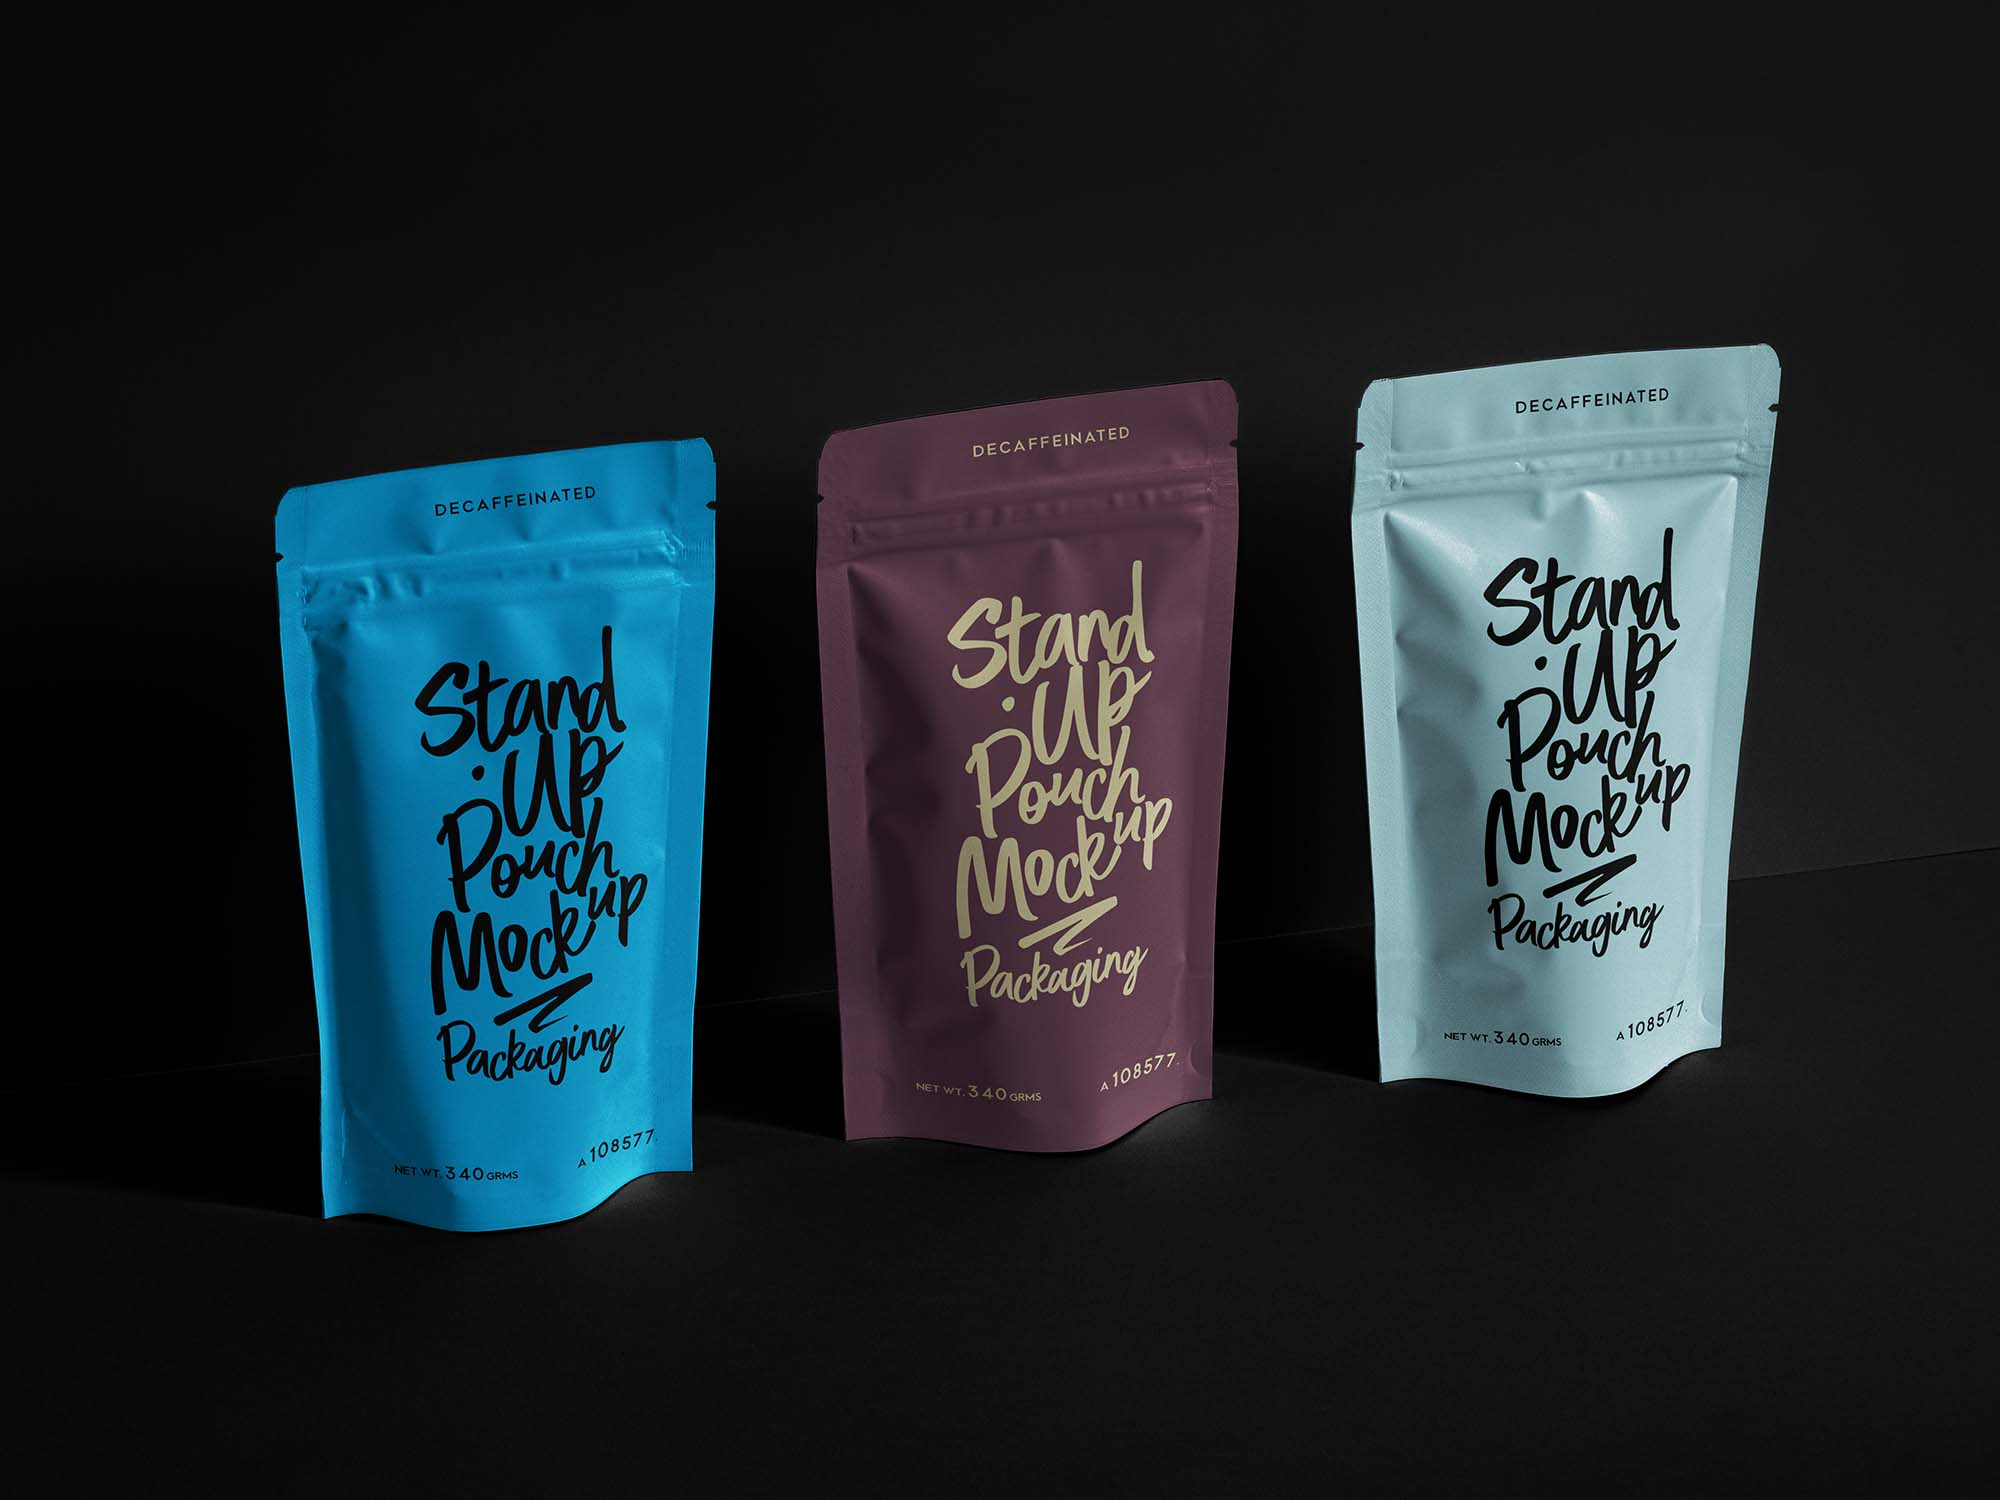 Stand-Up Pouch Mockup 2